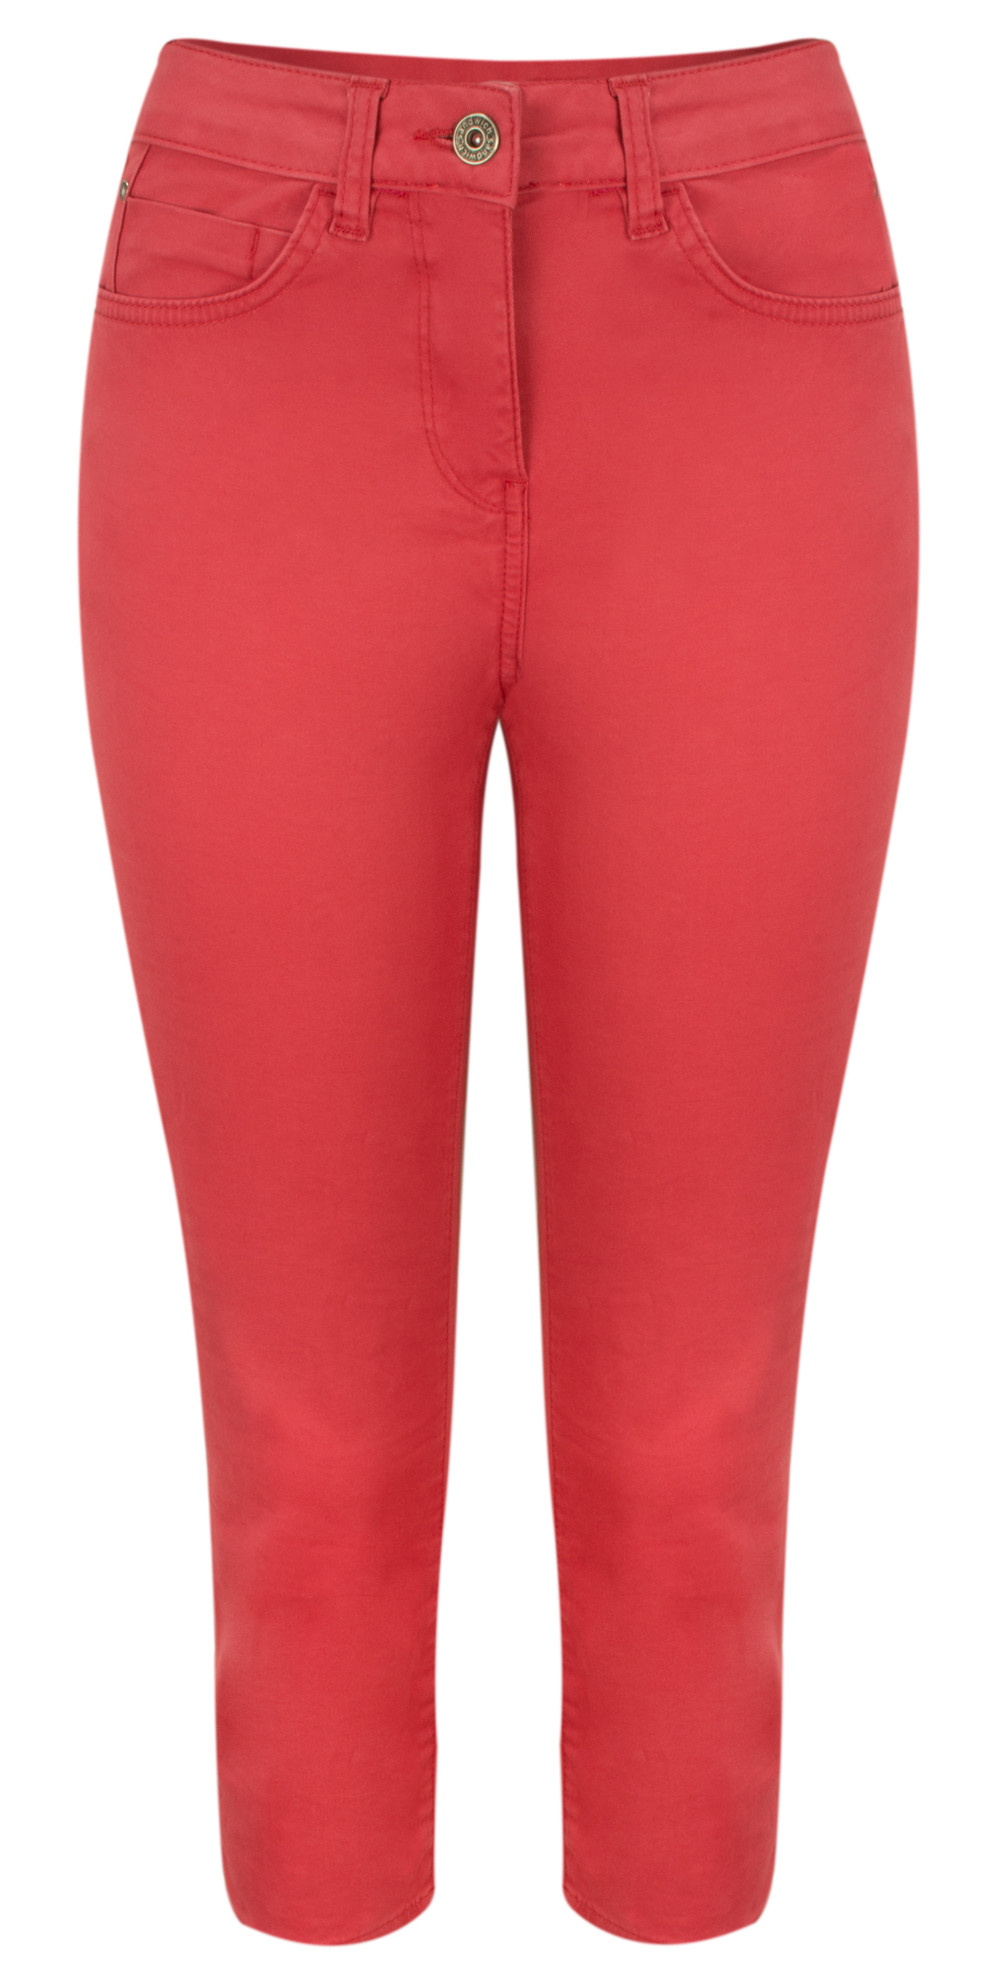 High Waist Skinny Stretch Casual Trouser main image